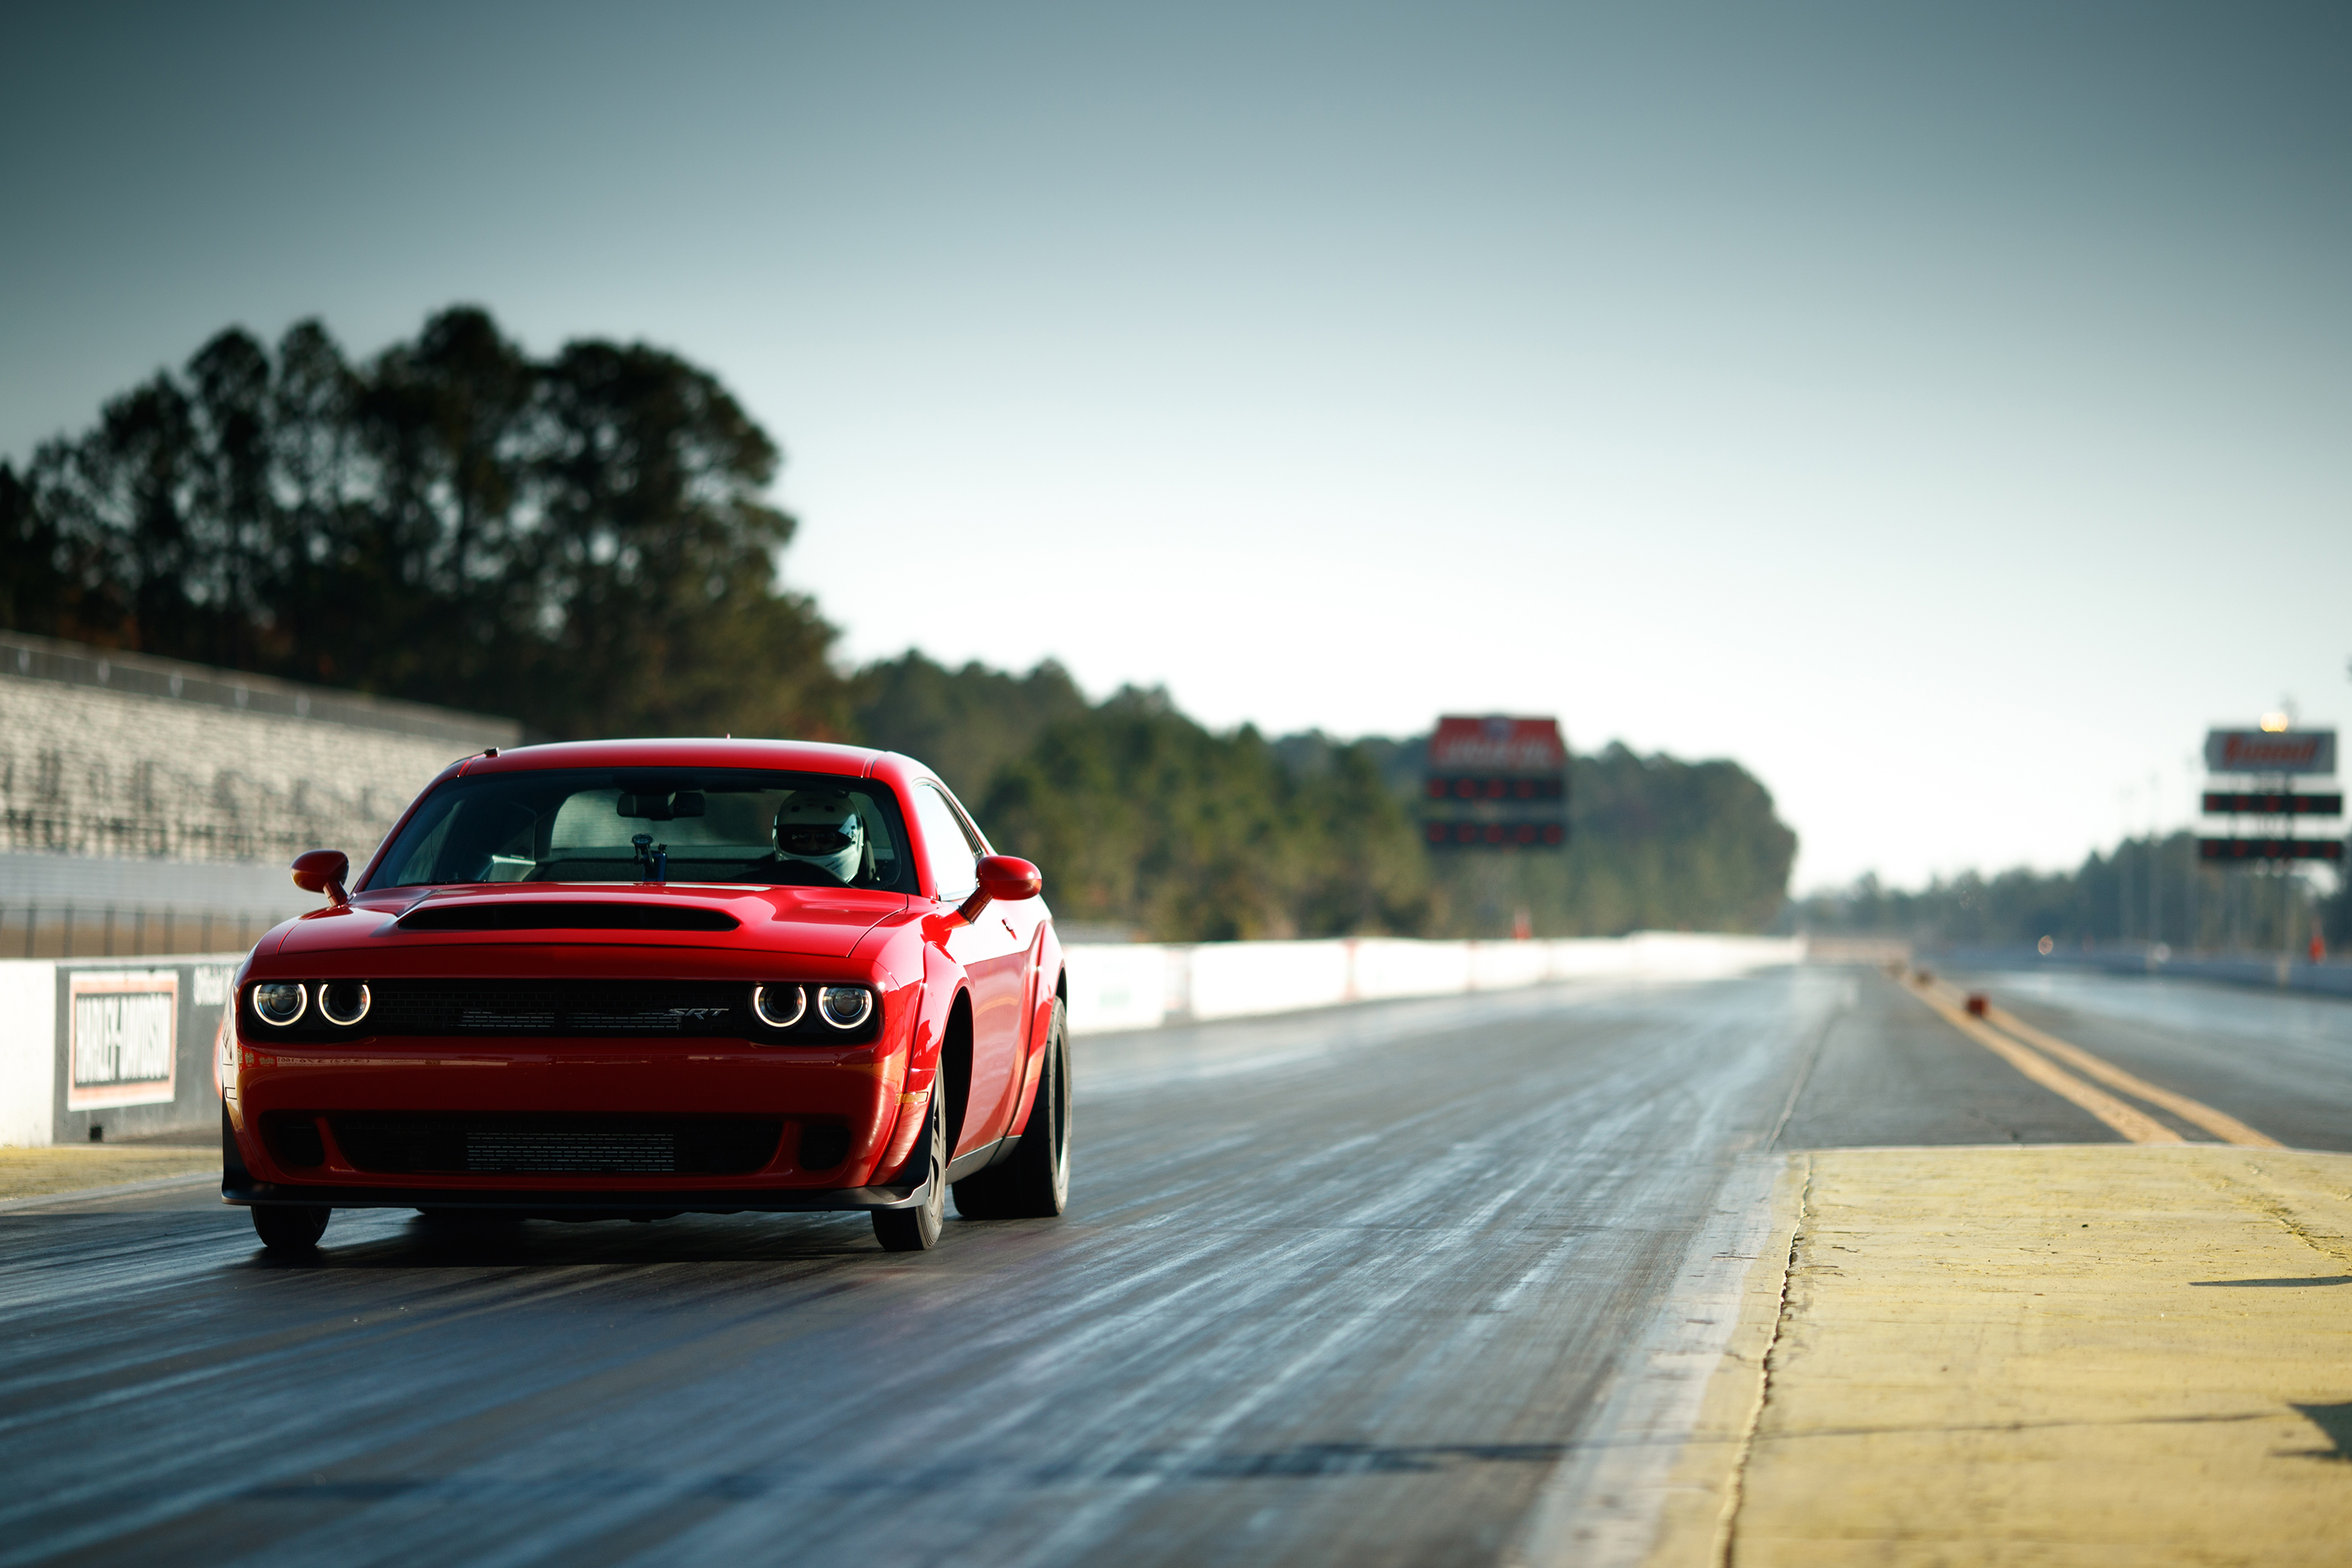 2018 Dodge Challenger SRT Demon on the track